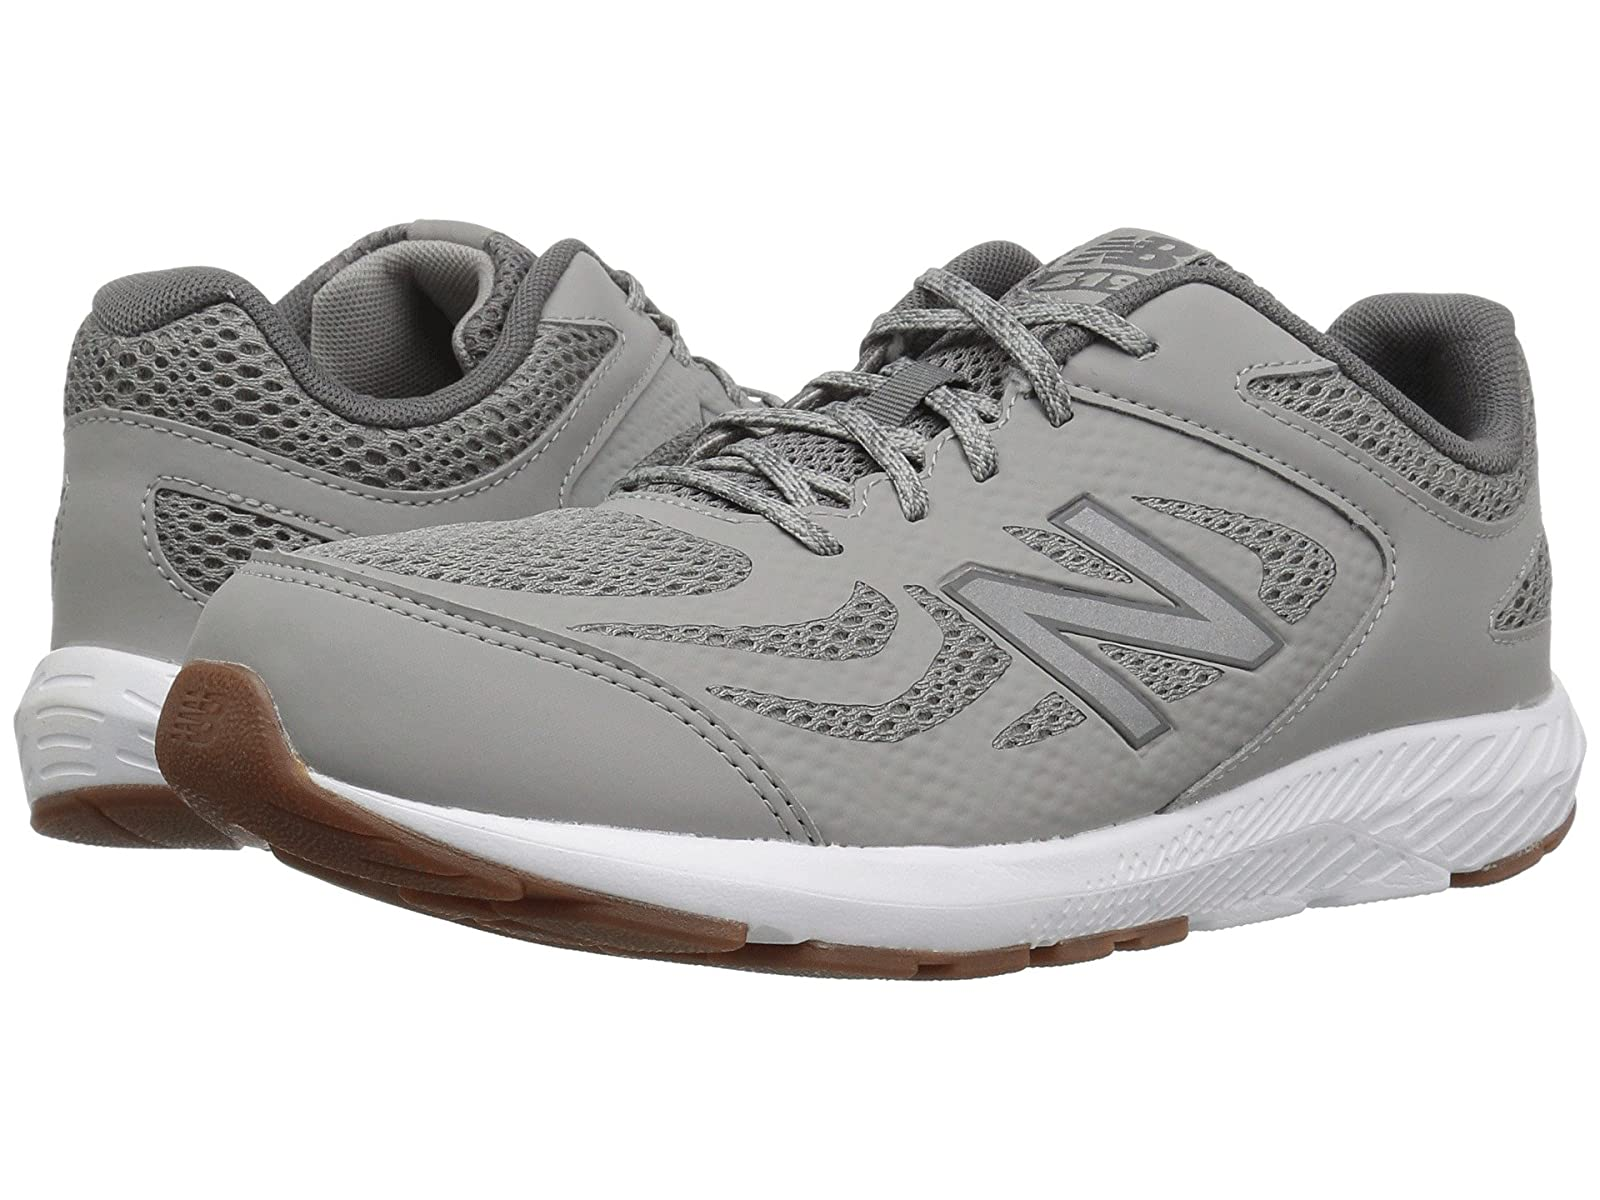 New Balance Kids KJ519v1Y (Little Kid/Big Kid)Atmospheric grades have affordable shoes